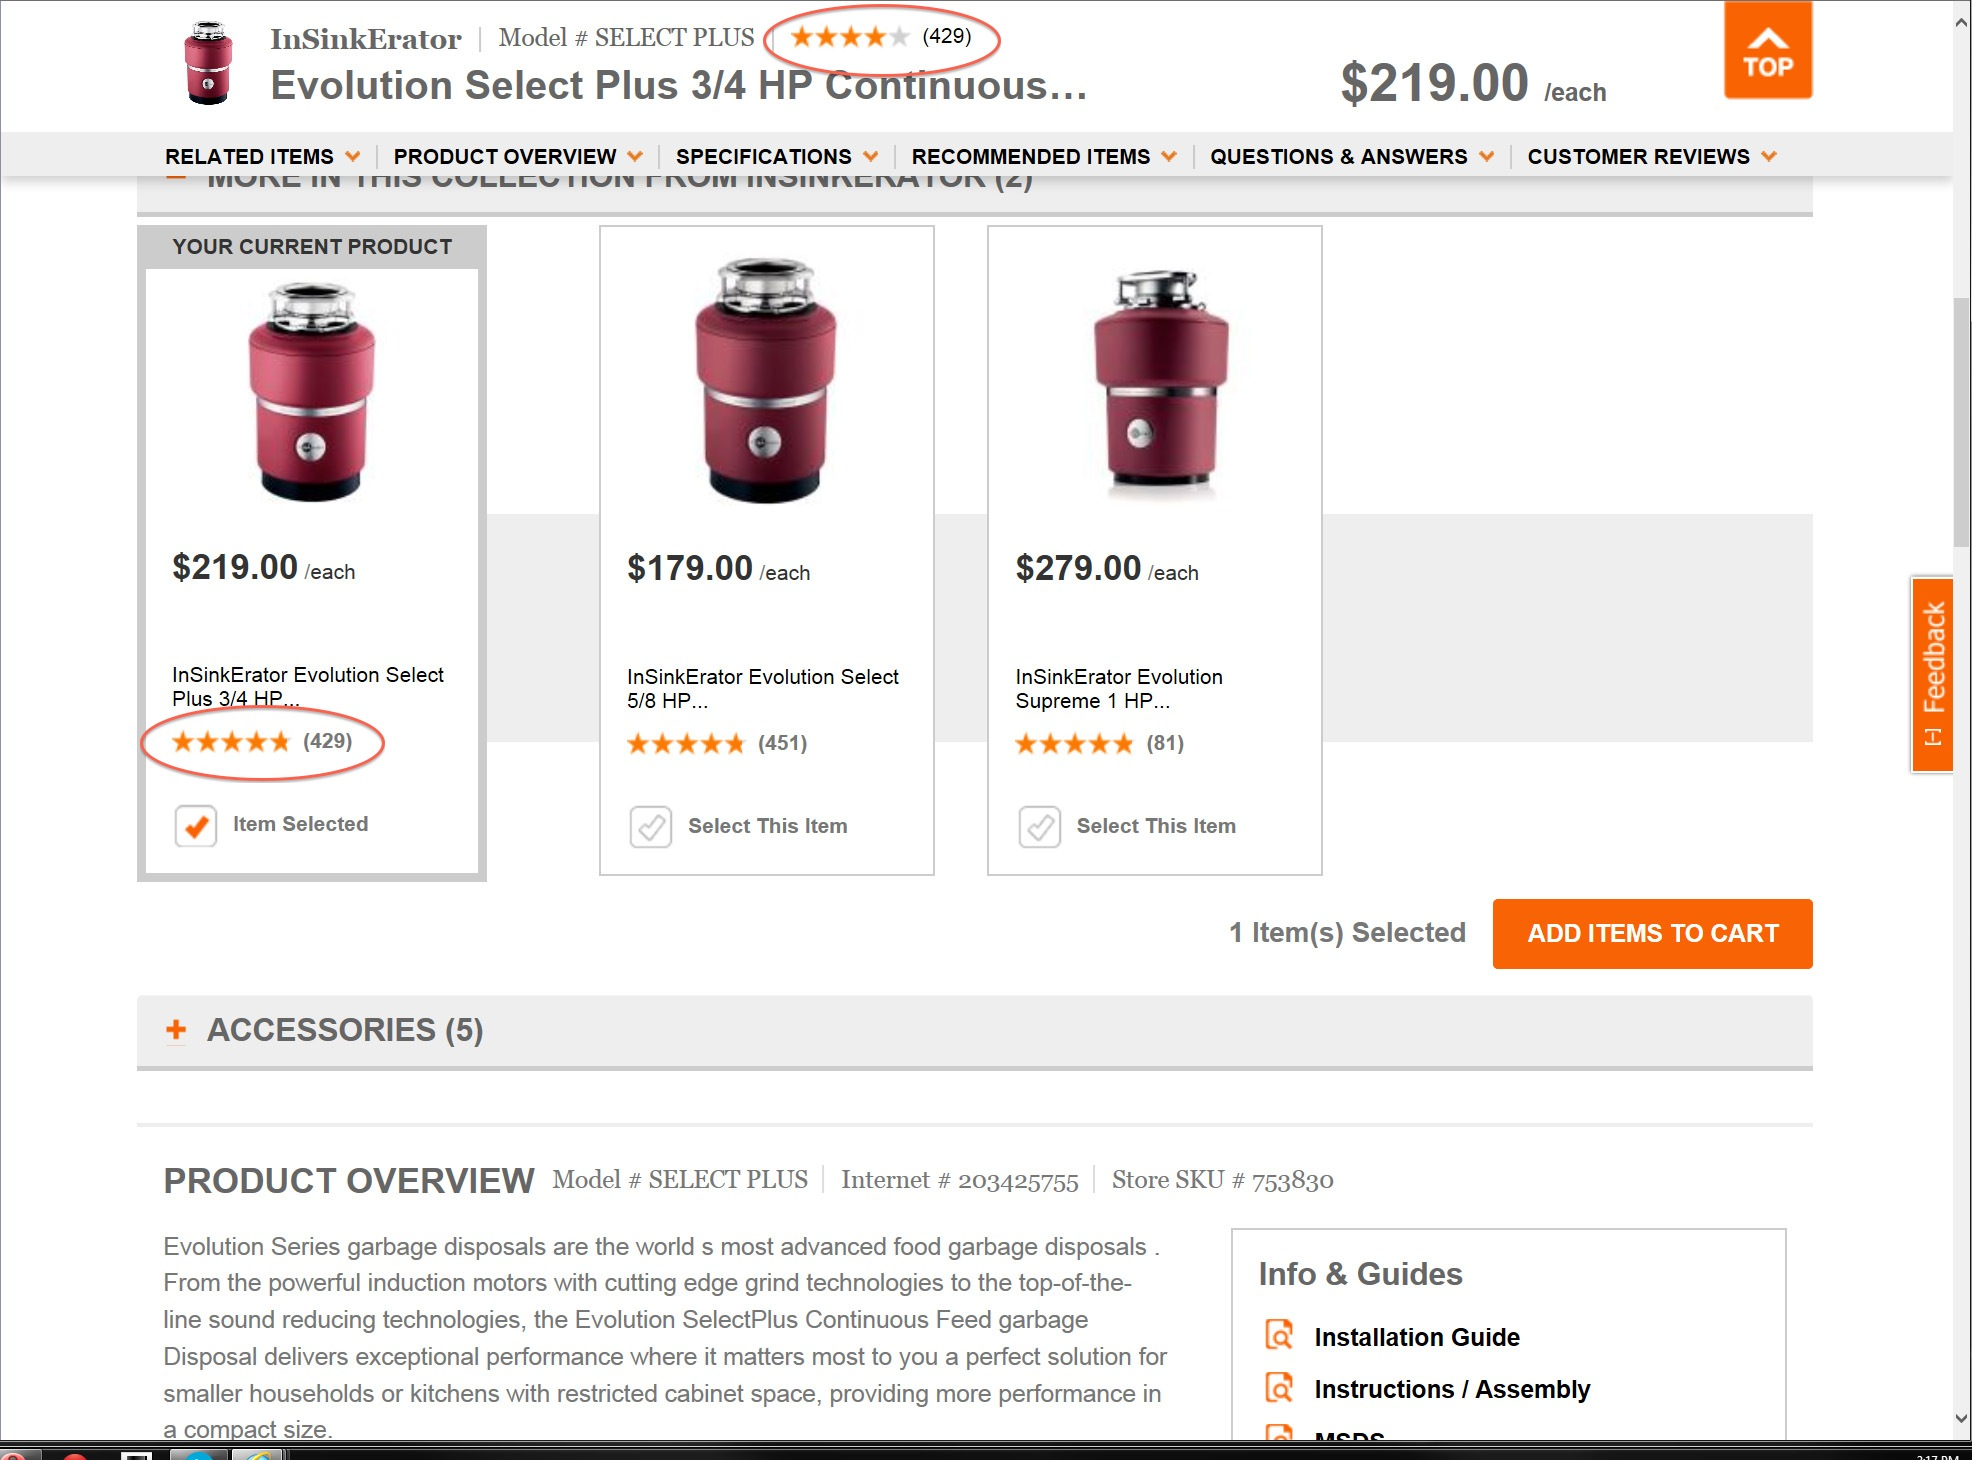 Home Depot Website Glitch Provides Two Ratings For Some Products